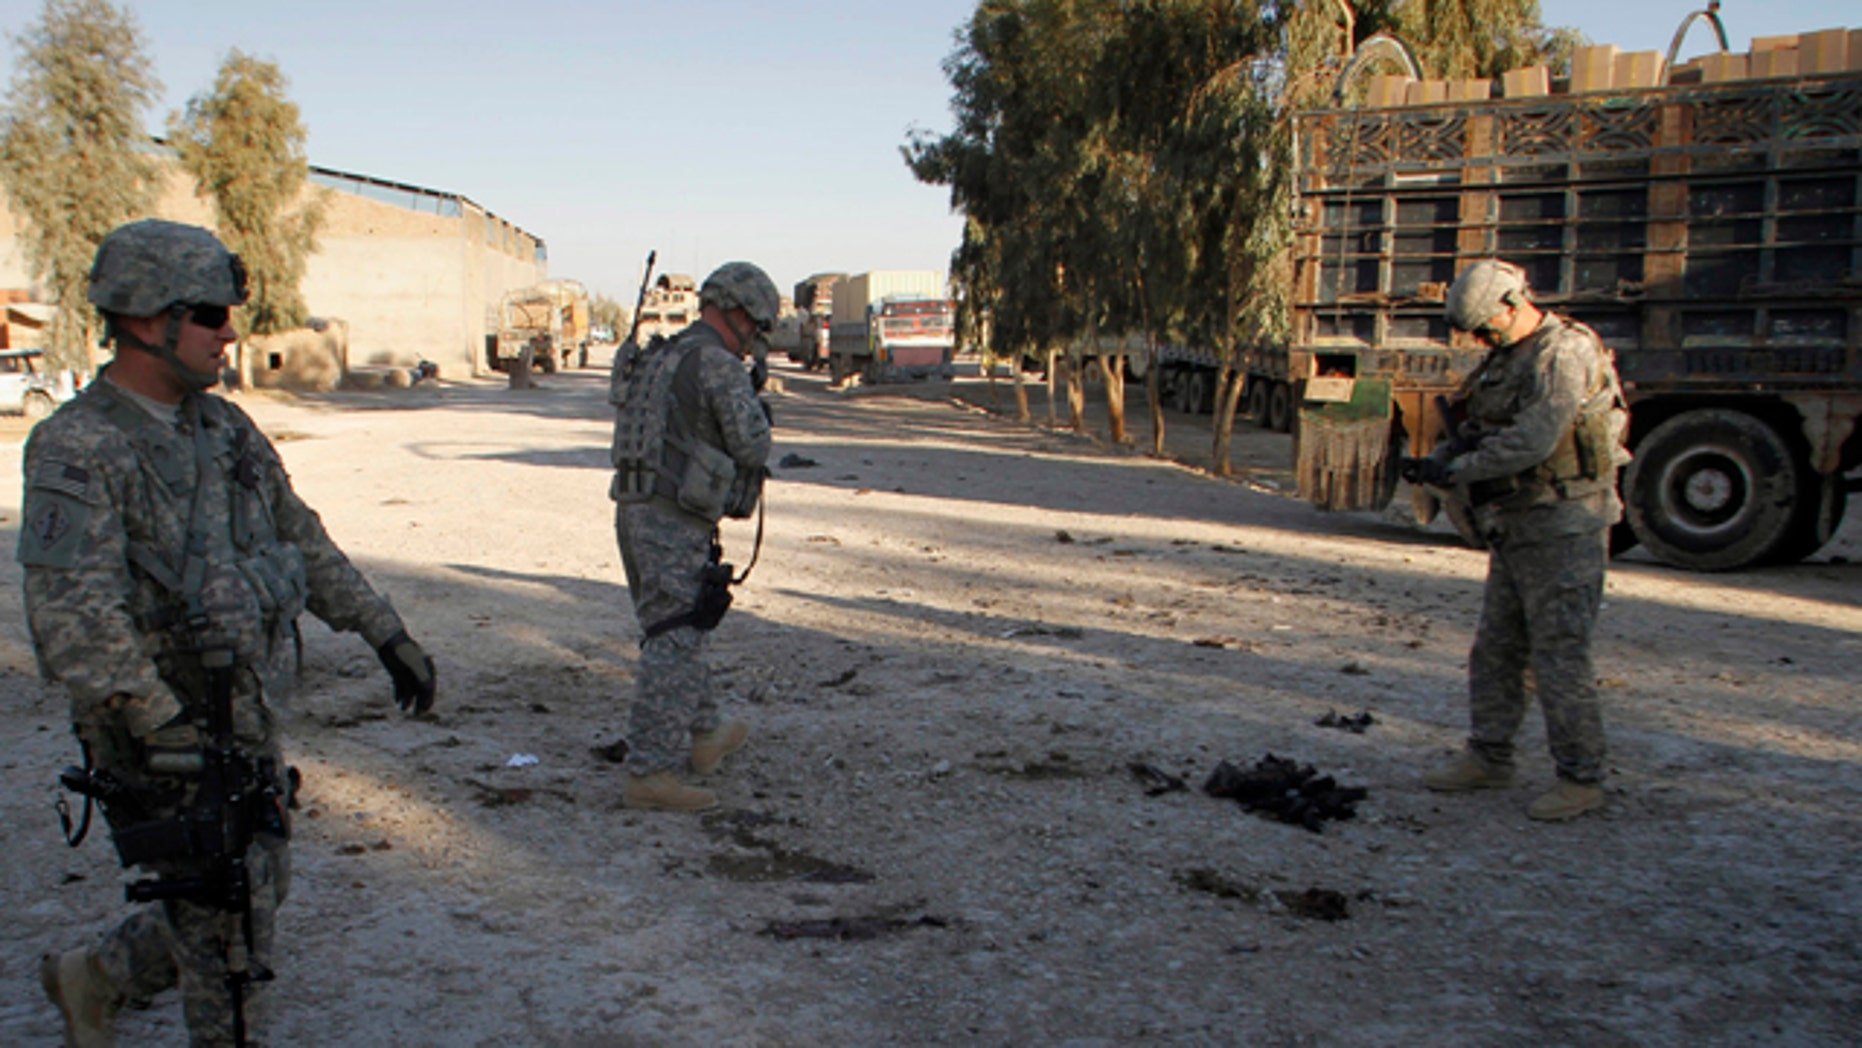 Feb. 7, 2011: U.S. soldiers inspect the scene of an explosion in Kandahar south of Kabul, Afghanistan that killed at least one person and wounded two.